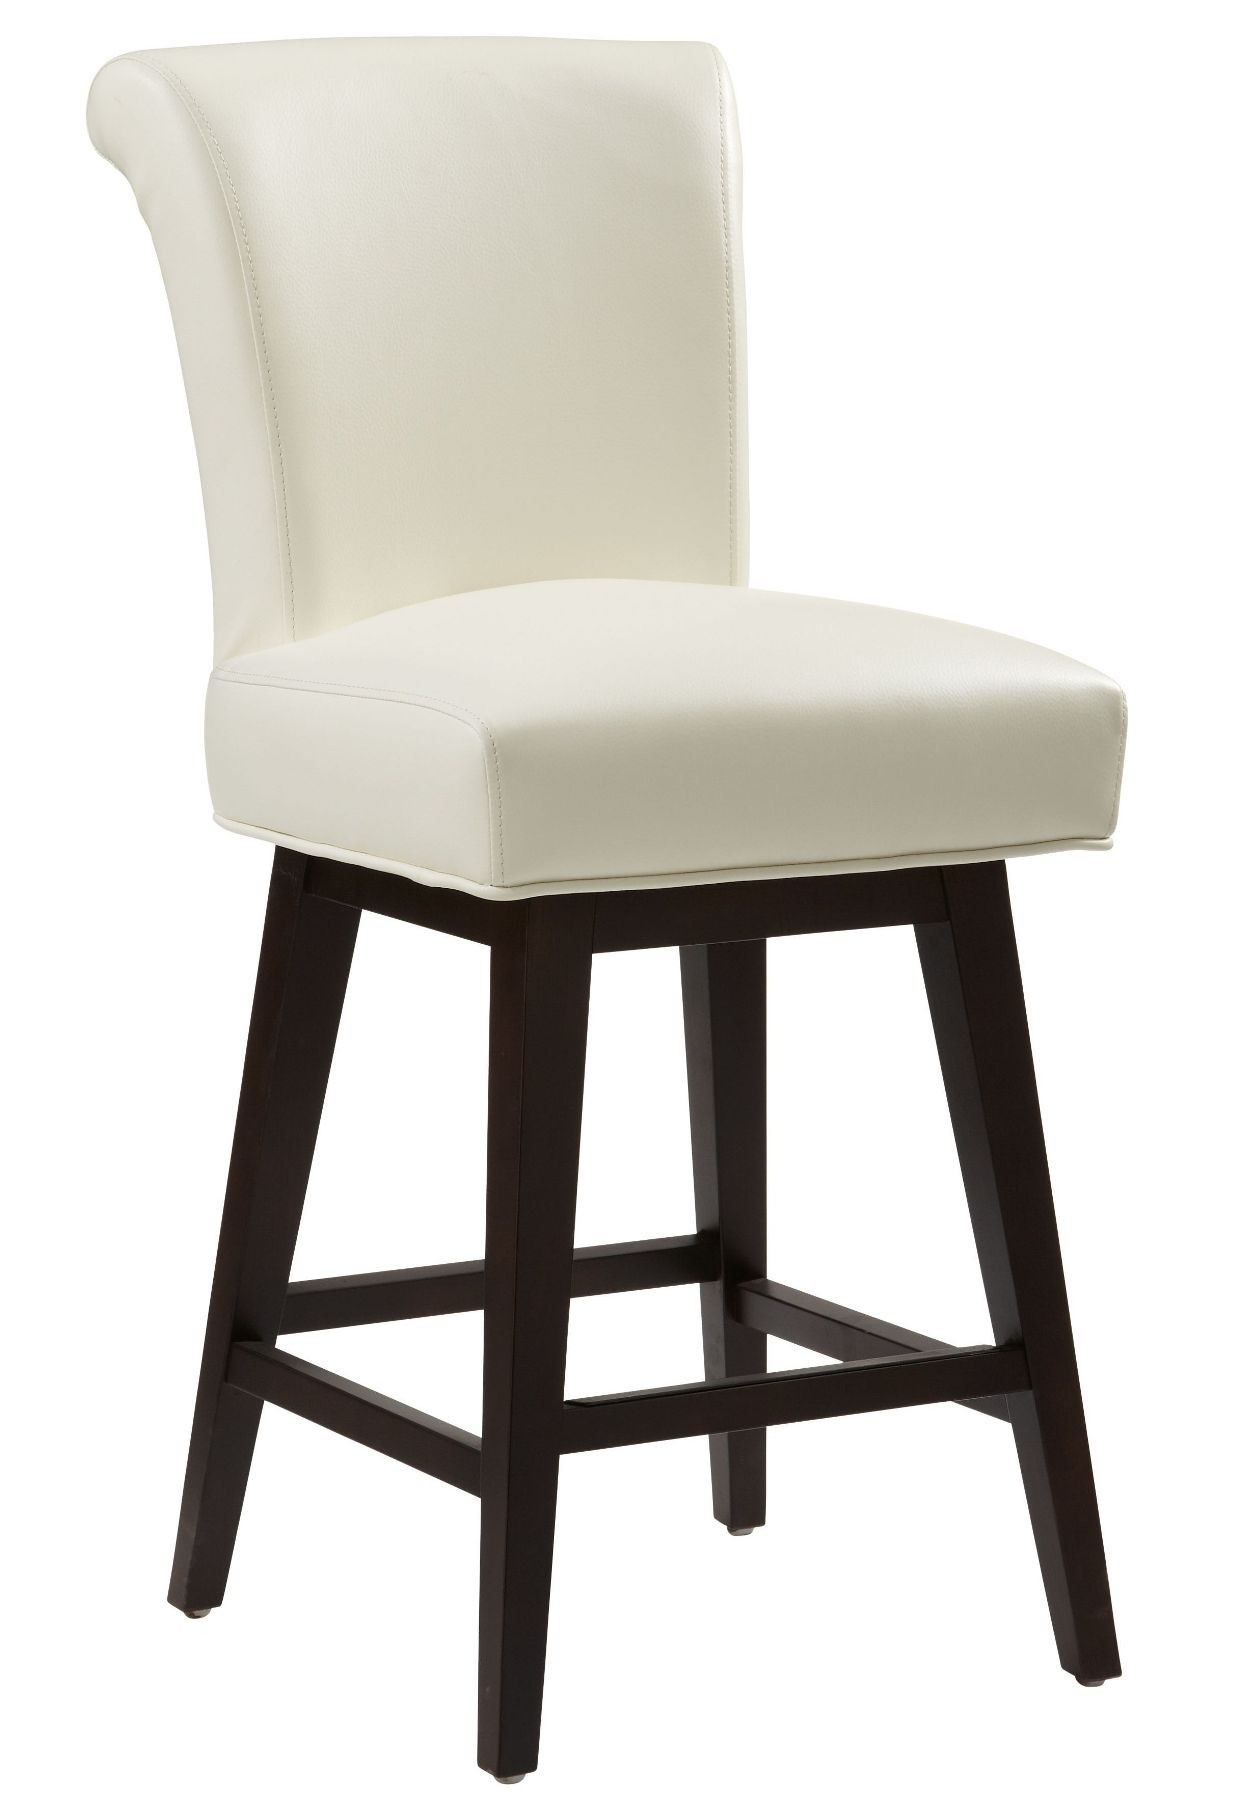 Permalink to White Faux Leather Kitchen Chairs